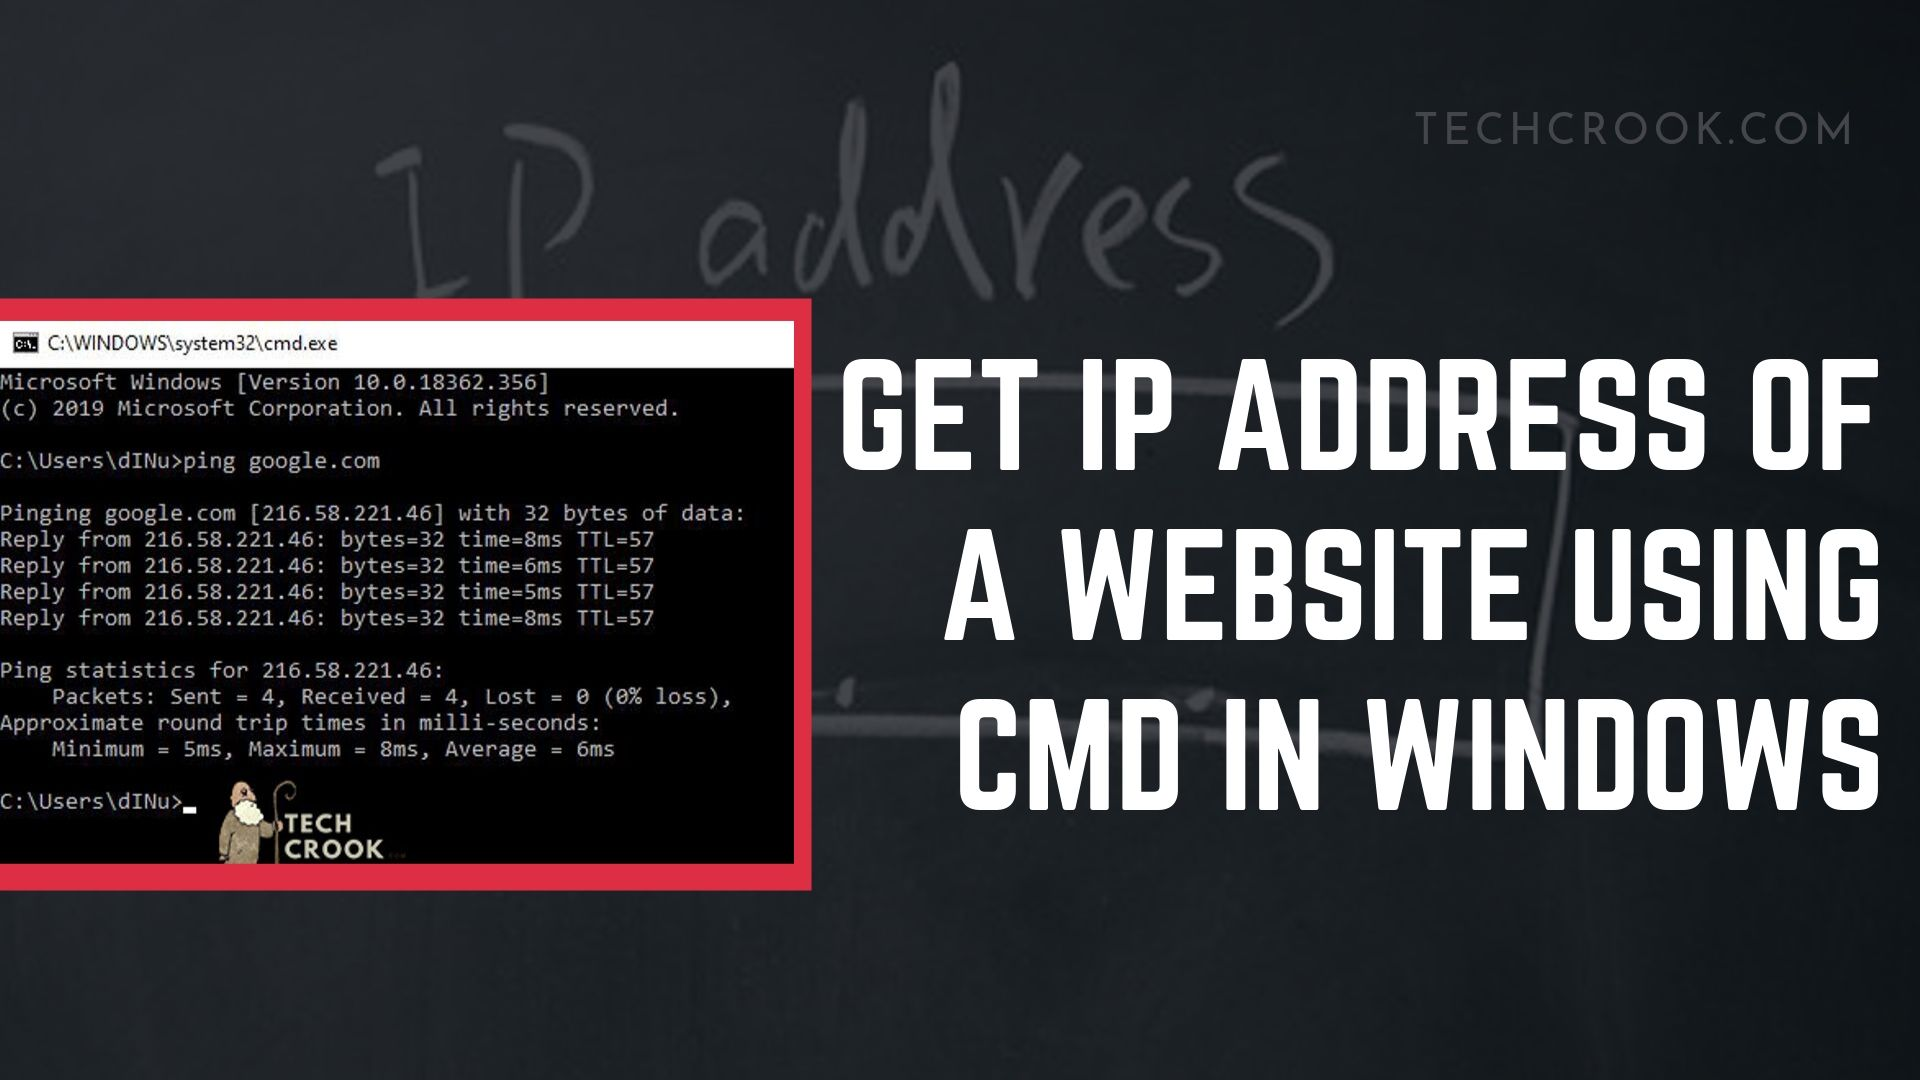 How to find the IP Address of a website using cmd in Windows